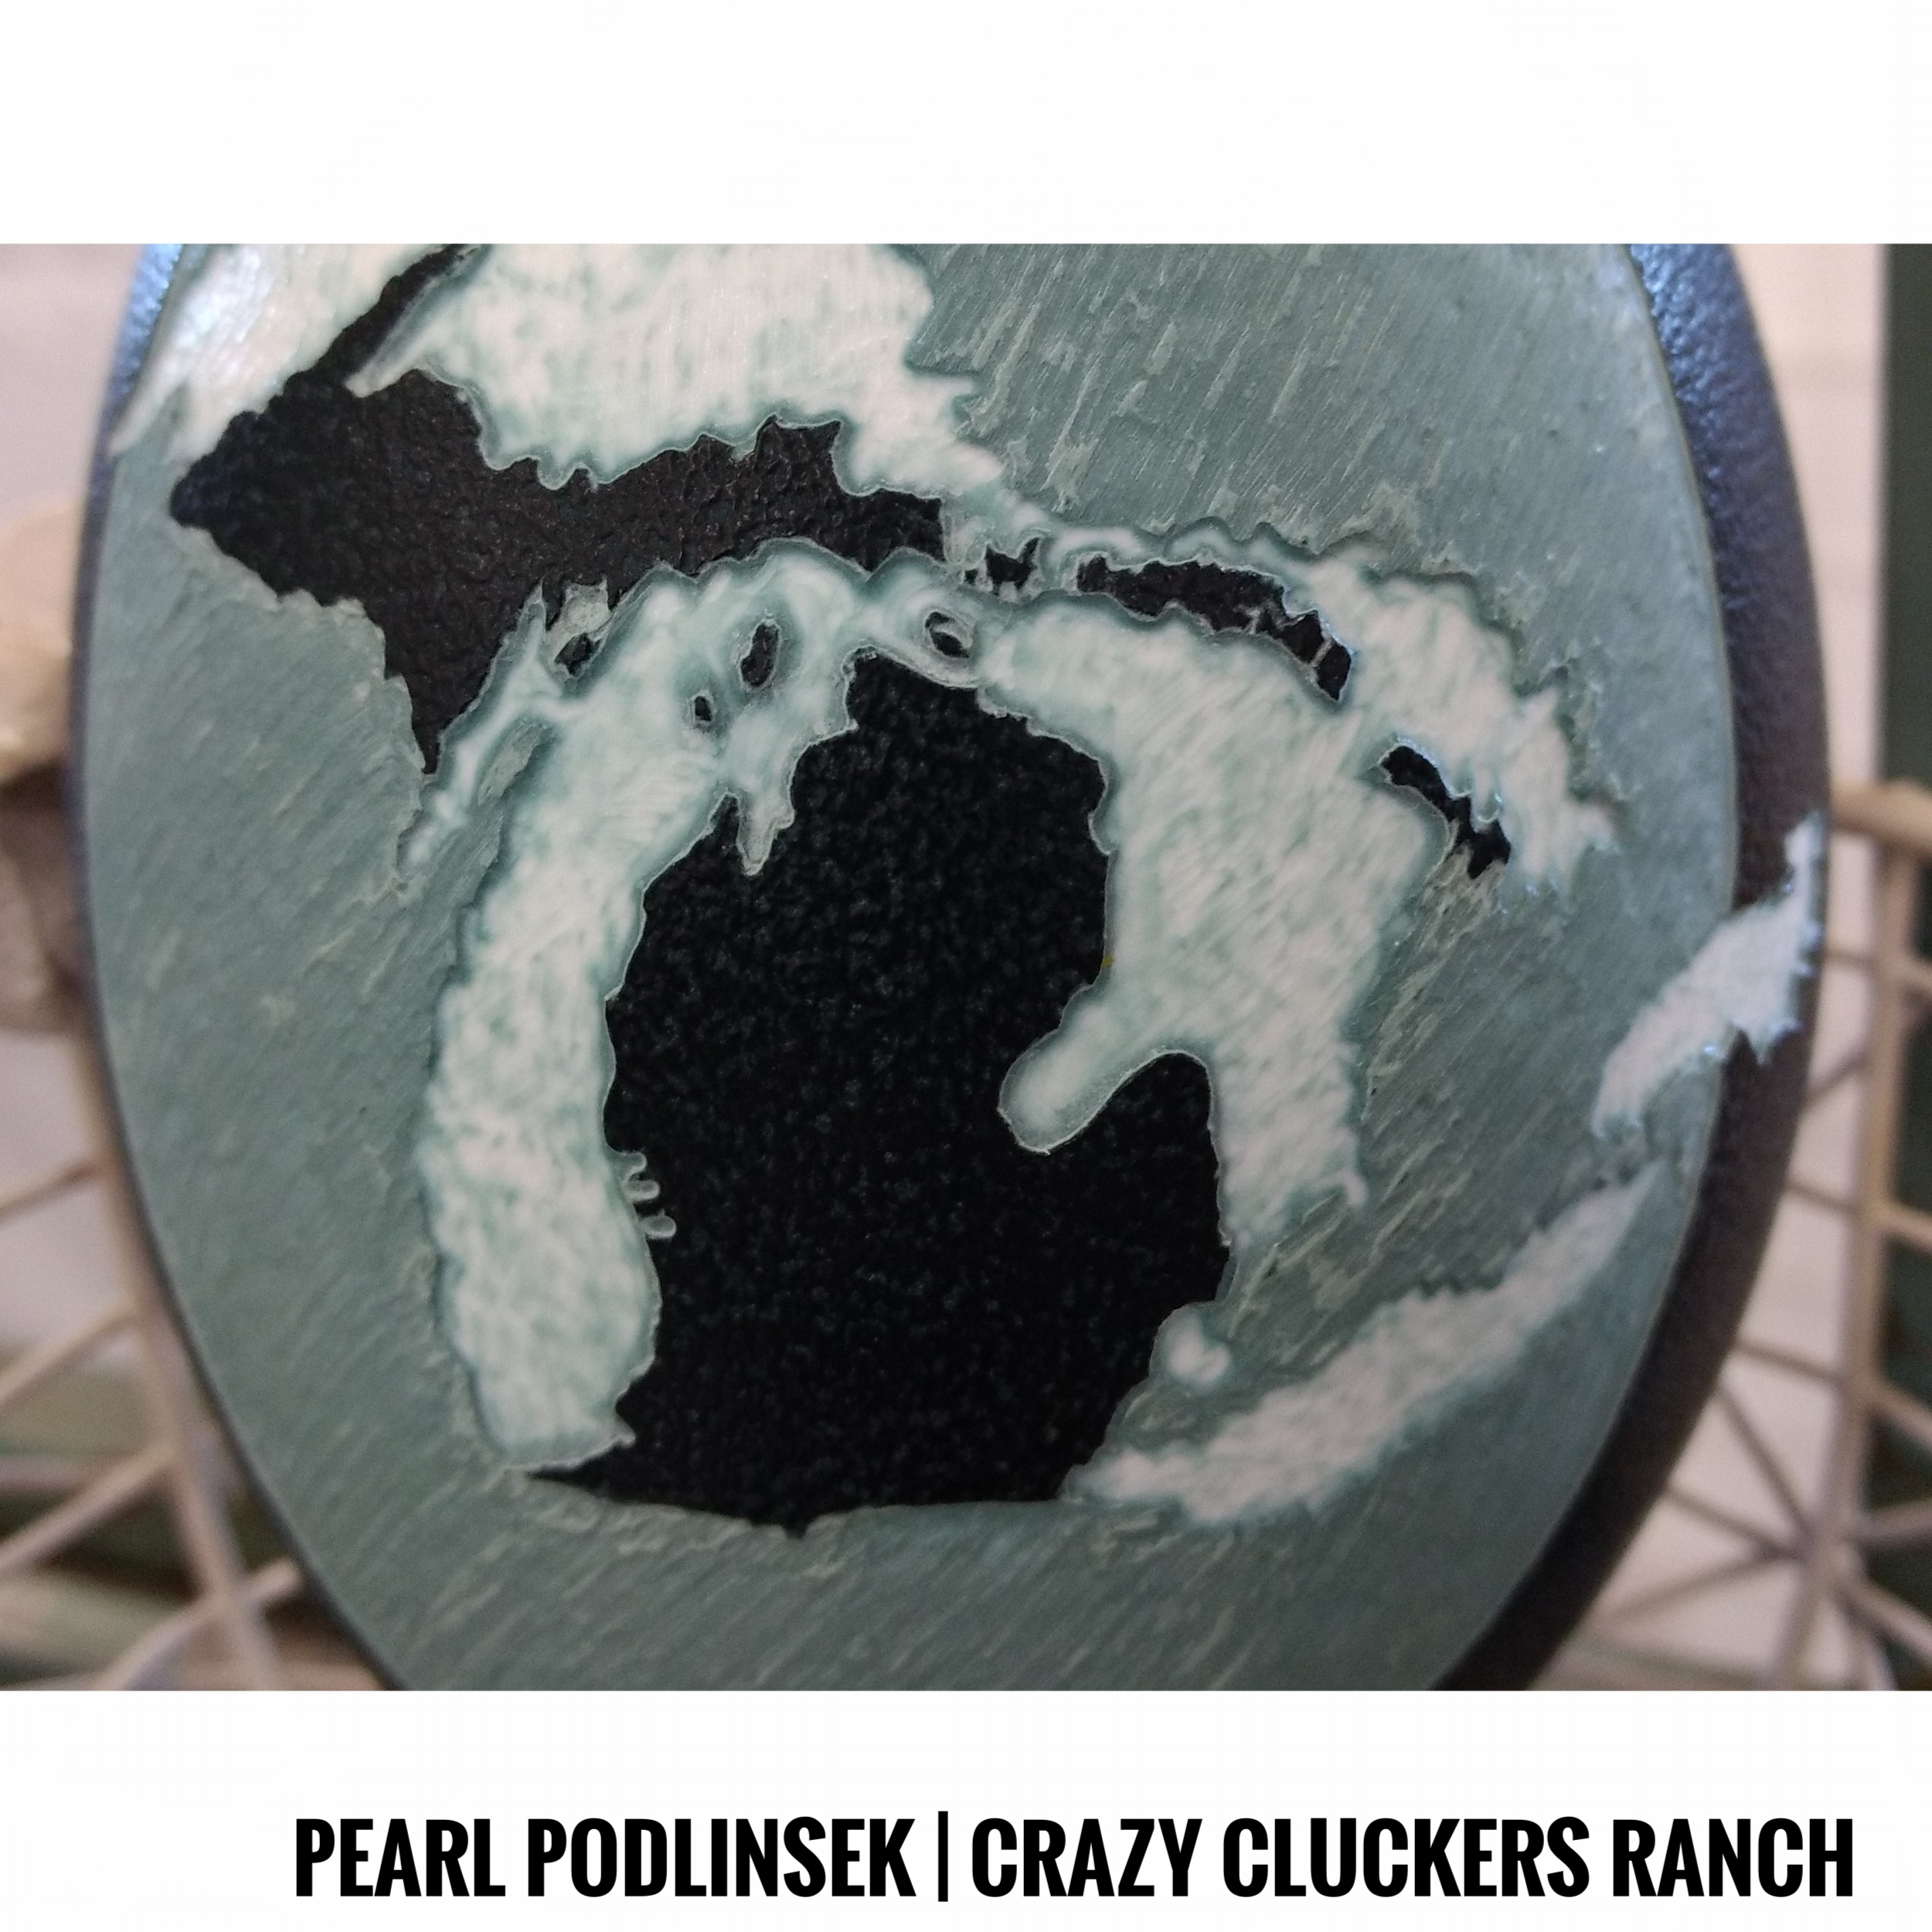 Pearl Podlinsek | Crazy Cluckers Ranch